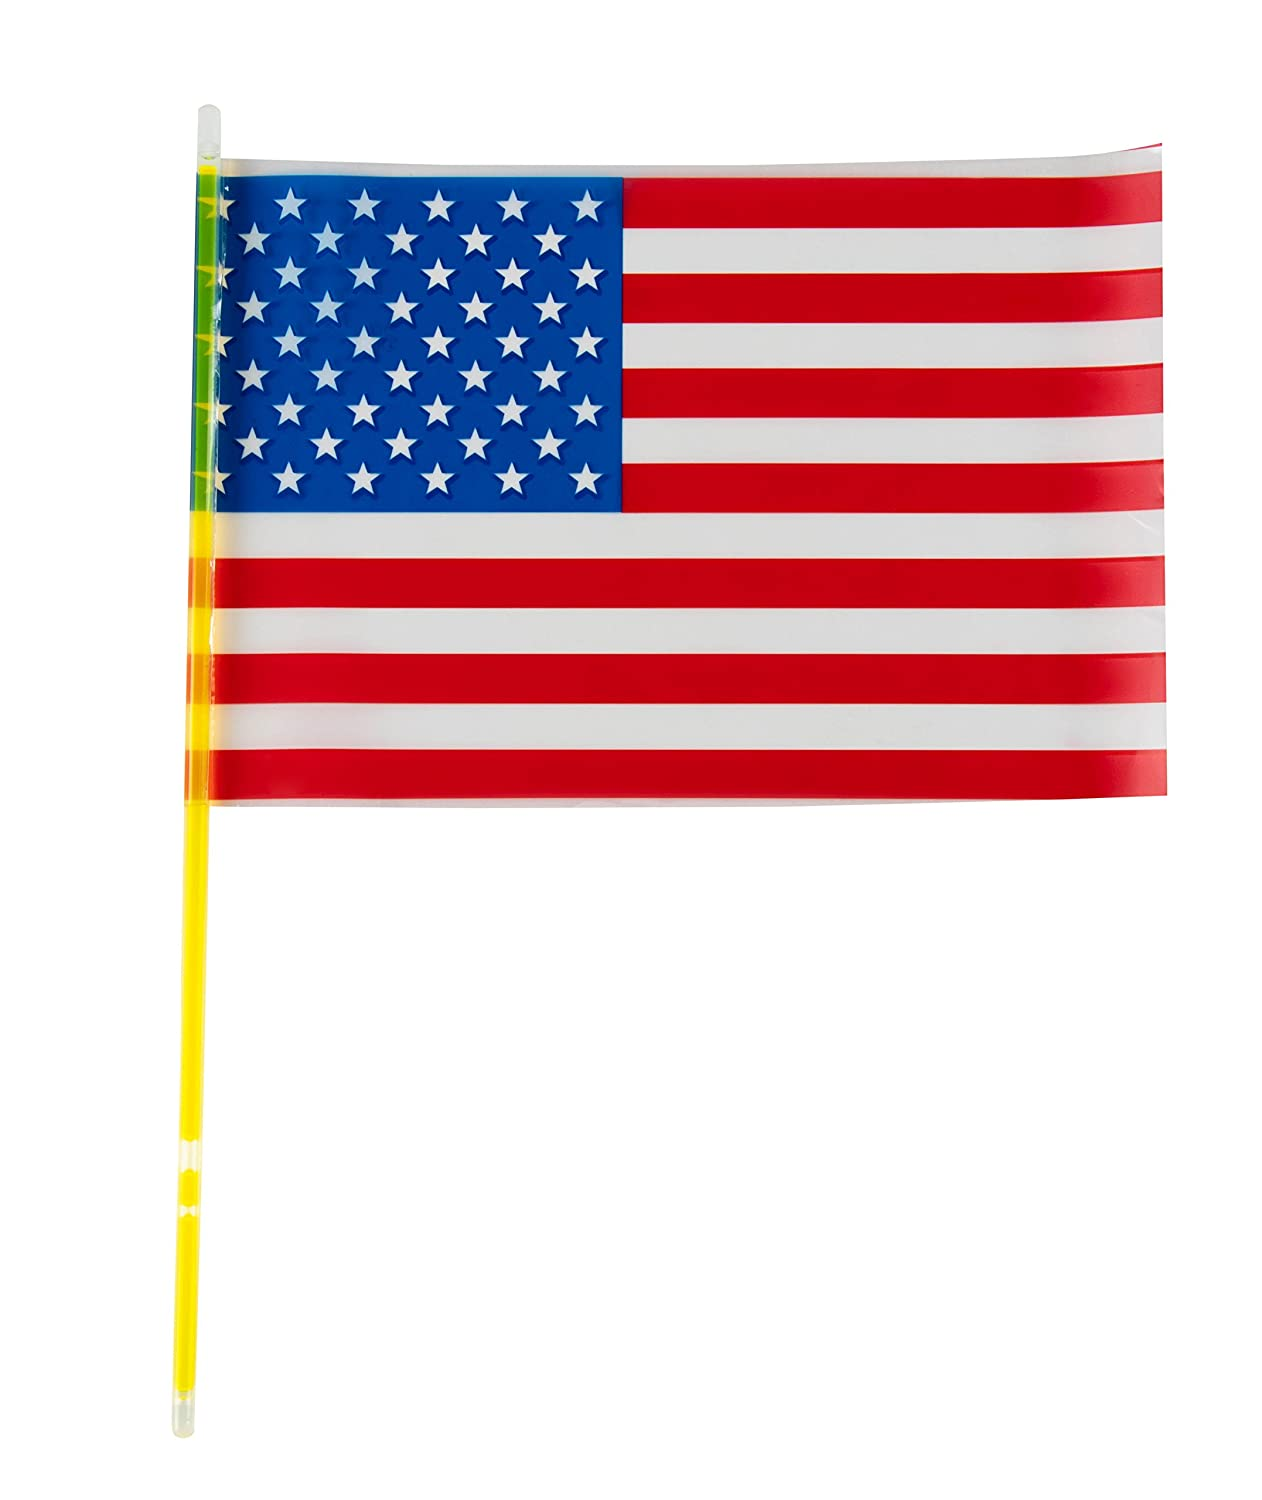 6 Colors Glow Sticks Halloween Goodie Bag Favors Handheld Sized Trick or Treat Toys 12-Pack American Flags Glow in the Dark Sticks Patriotic USA Party Supplies for Election Day Veterans Day